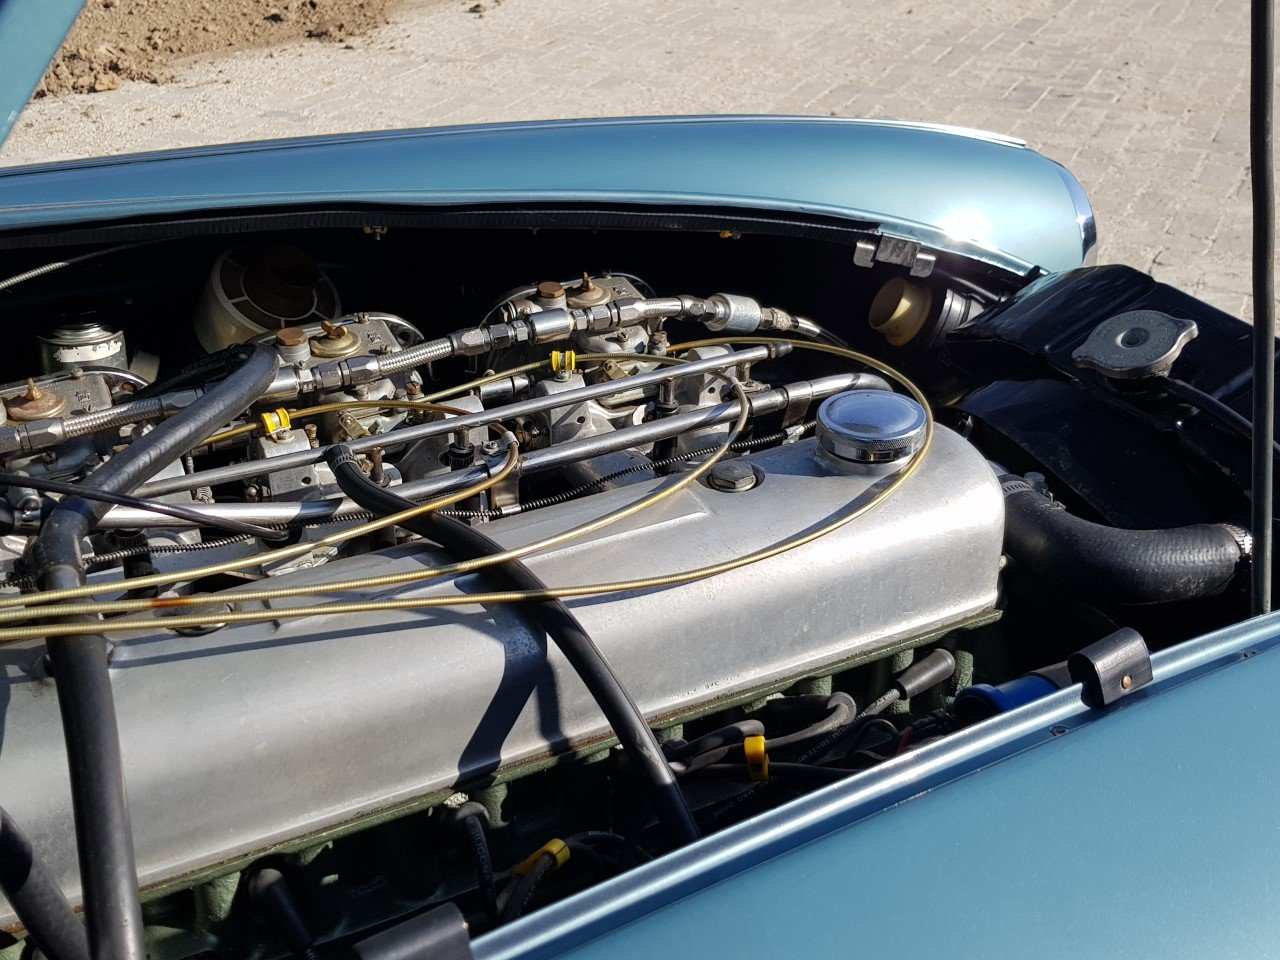 1964 Austin Healey 3000 Mark 3 convertible BJ8 (RESTORED) For Sale (picture 4 of 6)